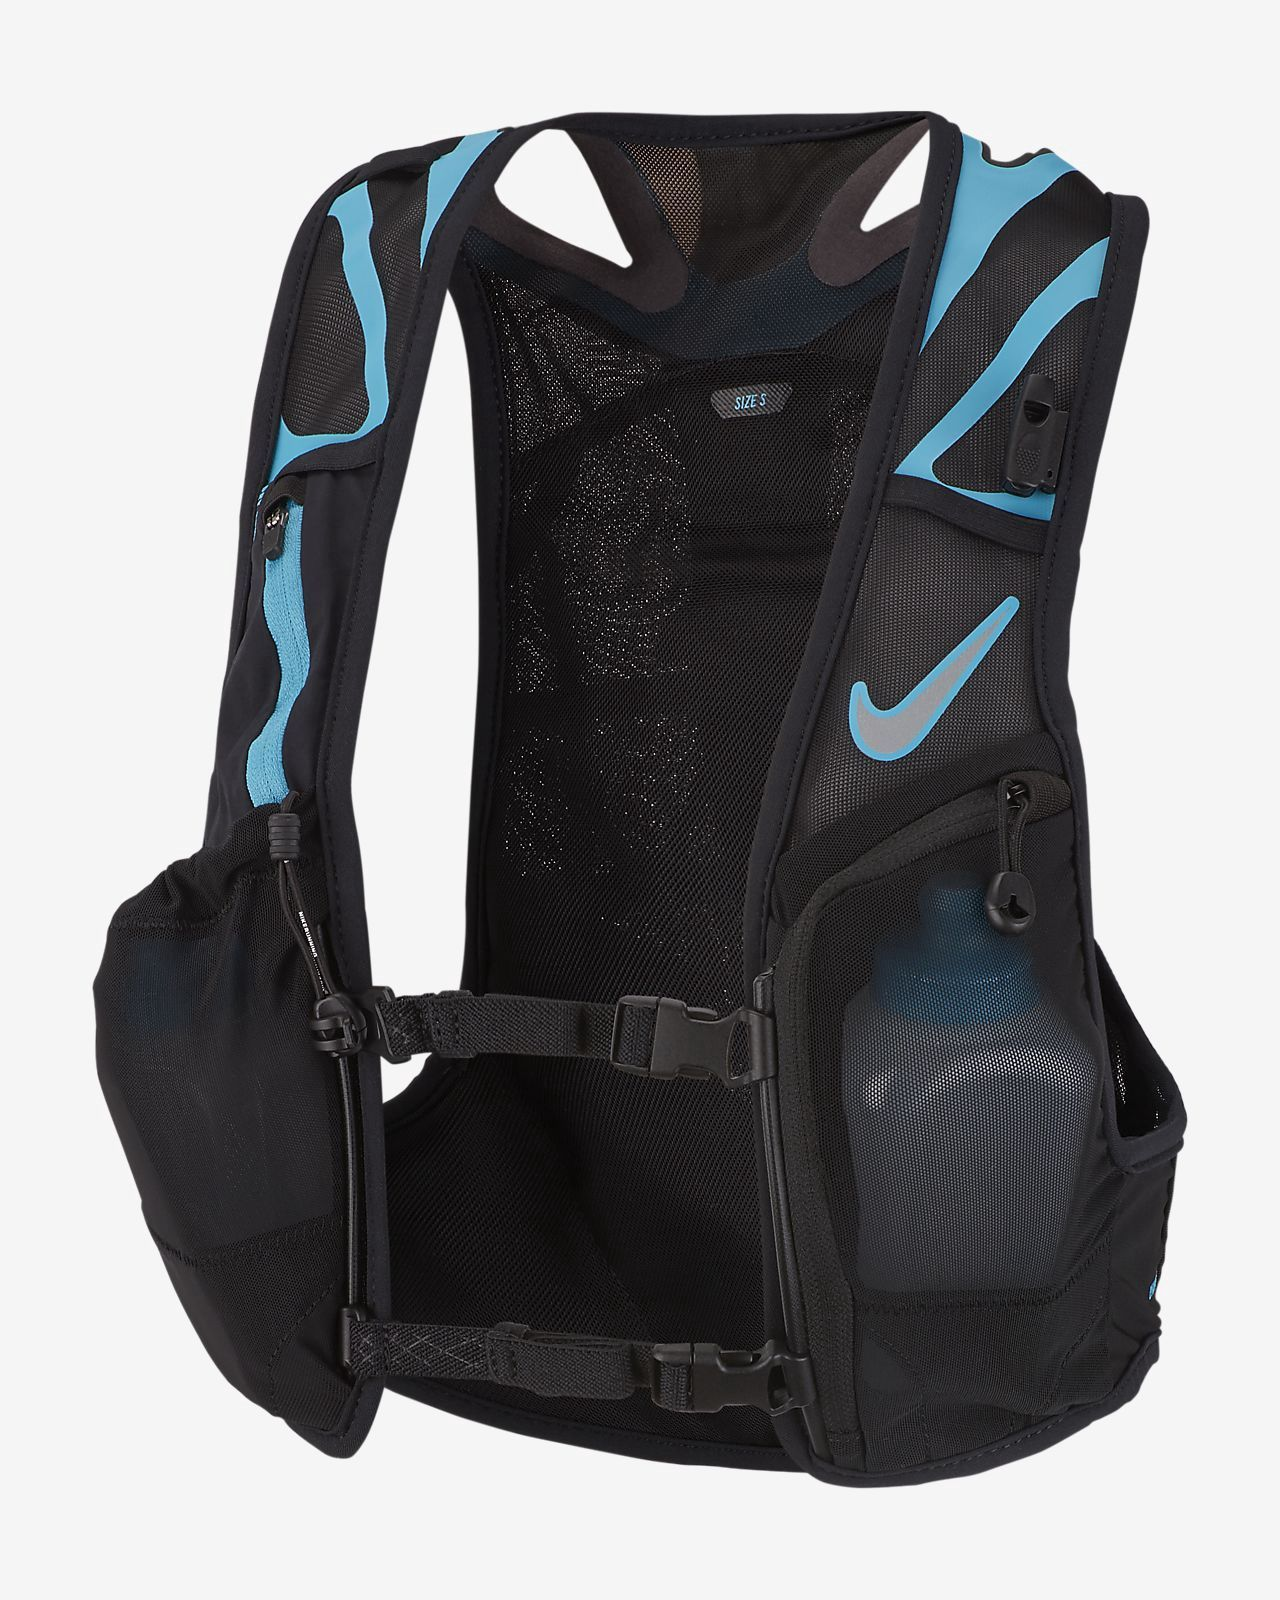 Nike Trail Kiger Running Vest S | Striped backpack, Nike